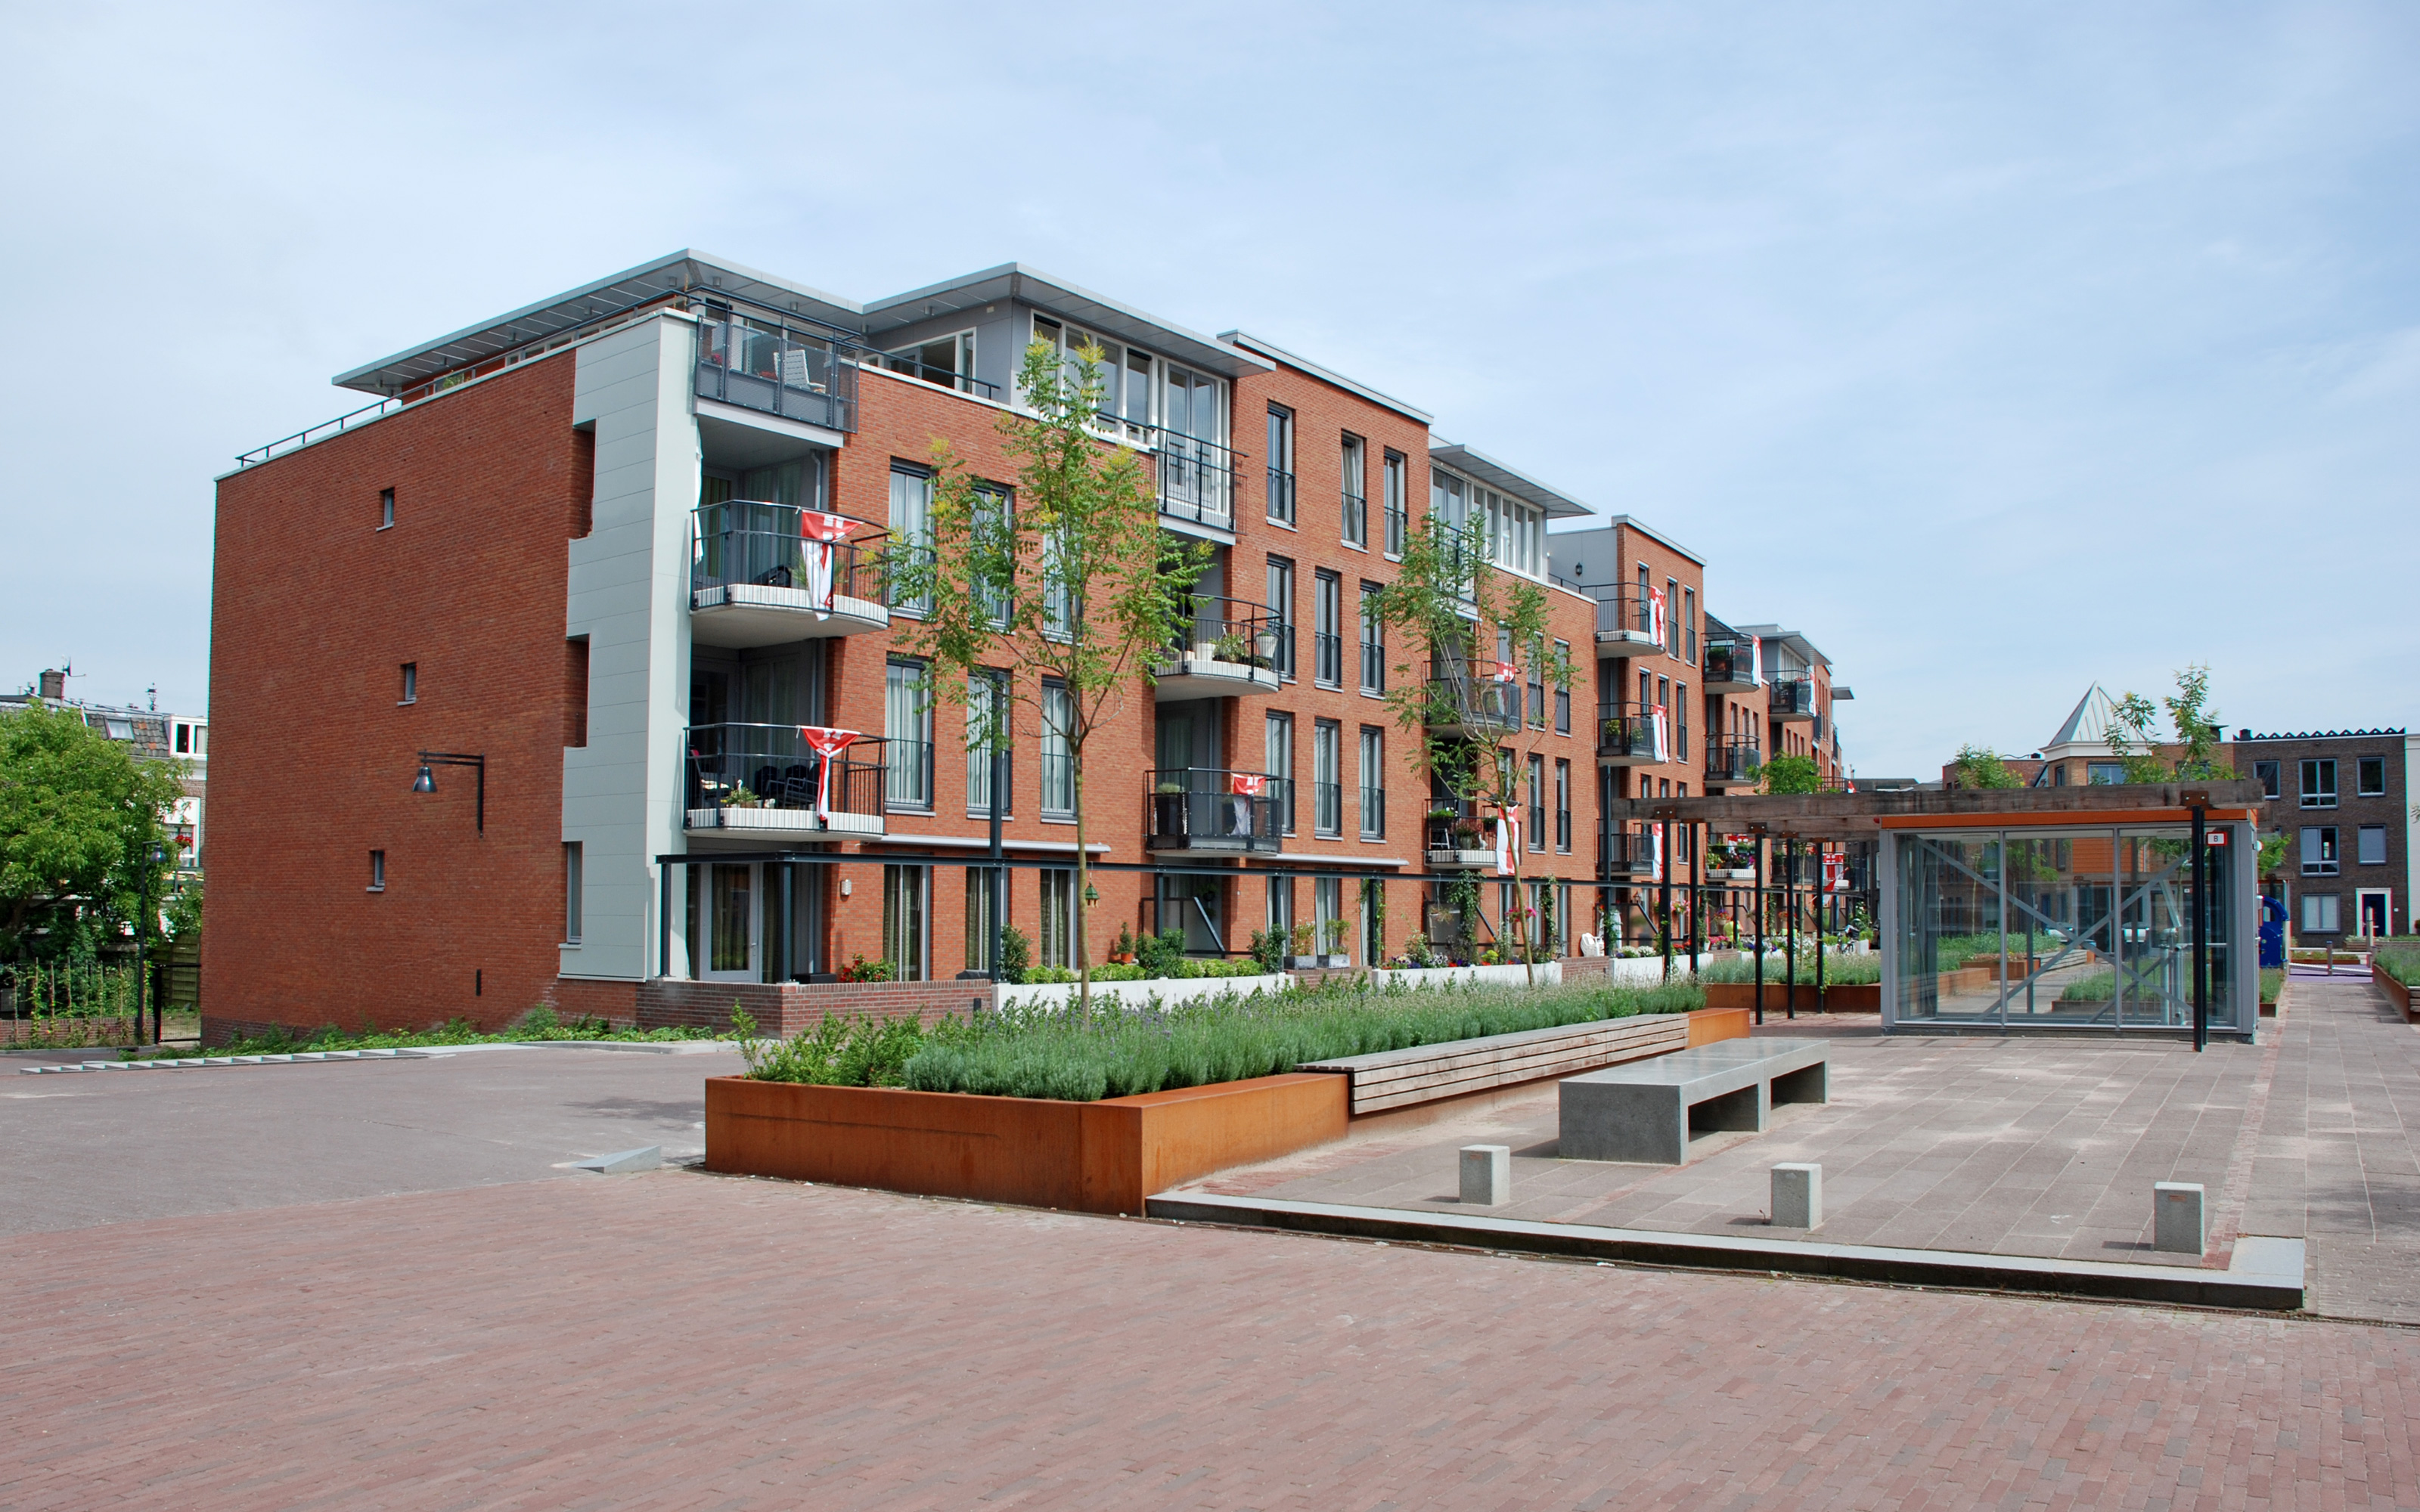 Residential brick buildings with vegetated courtyard